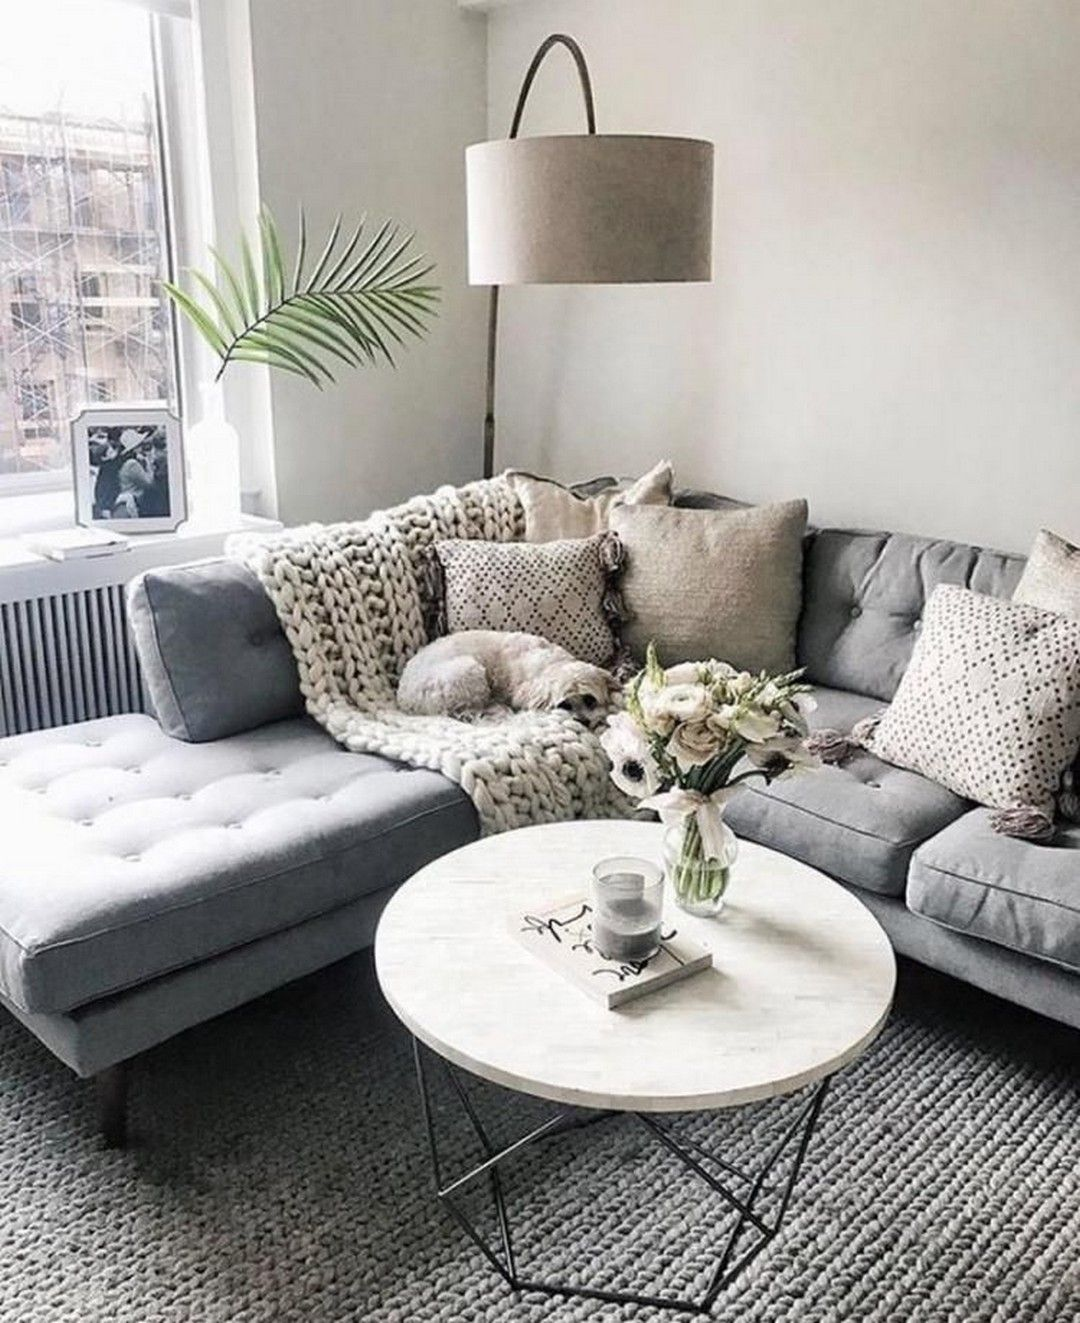 35 apartment decorating ideas for summer and winter apartment rh pinterest com